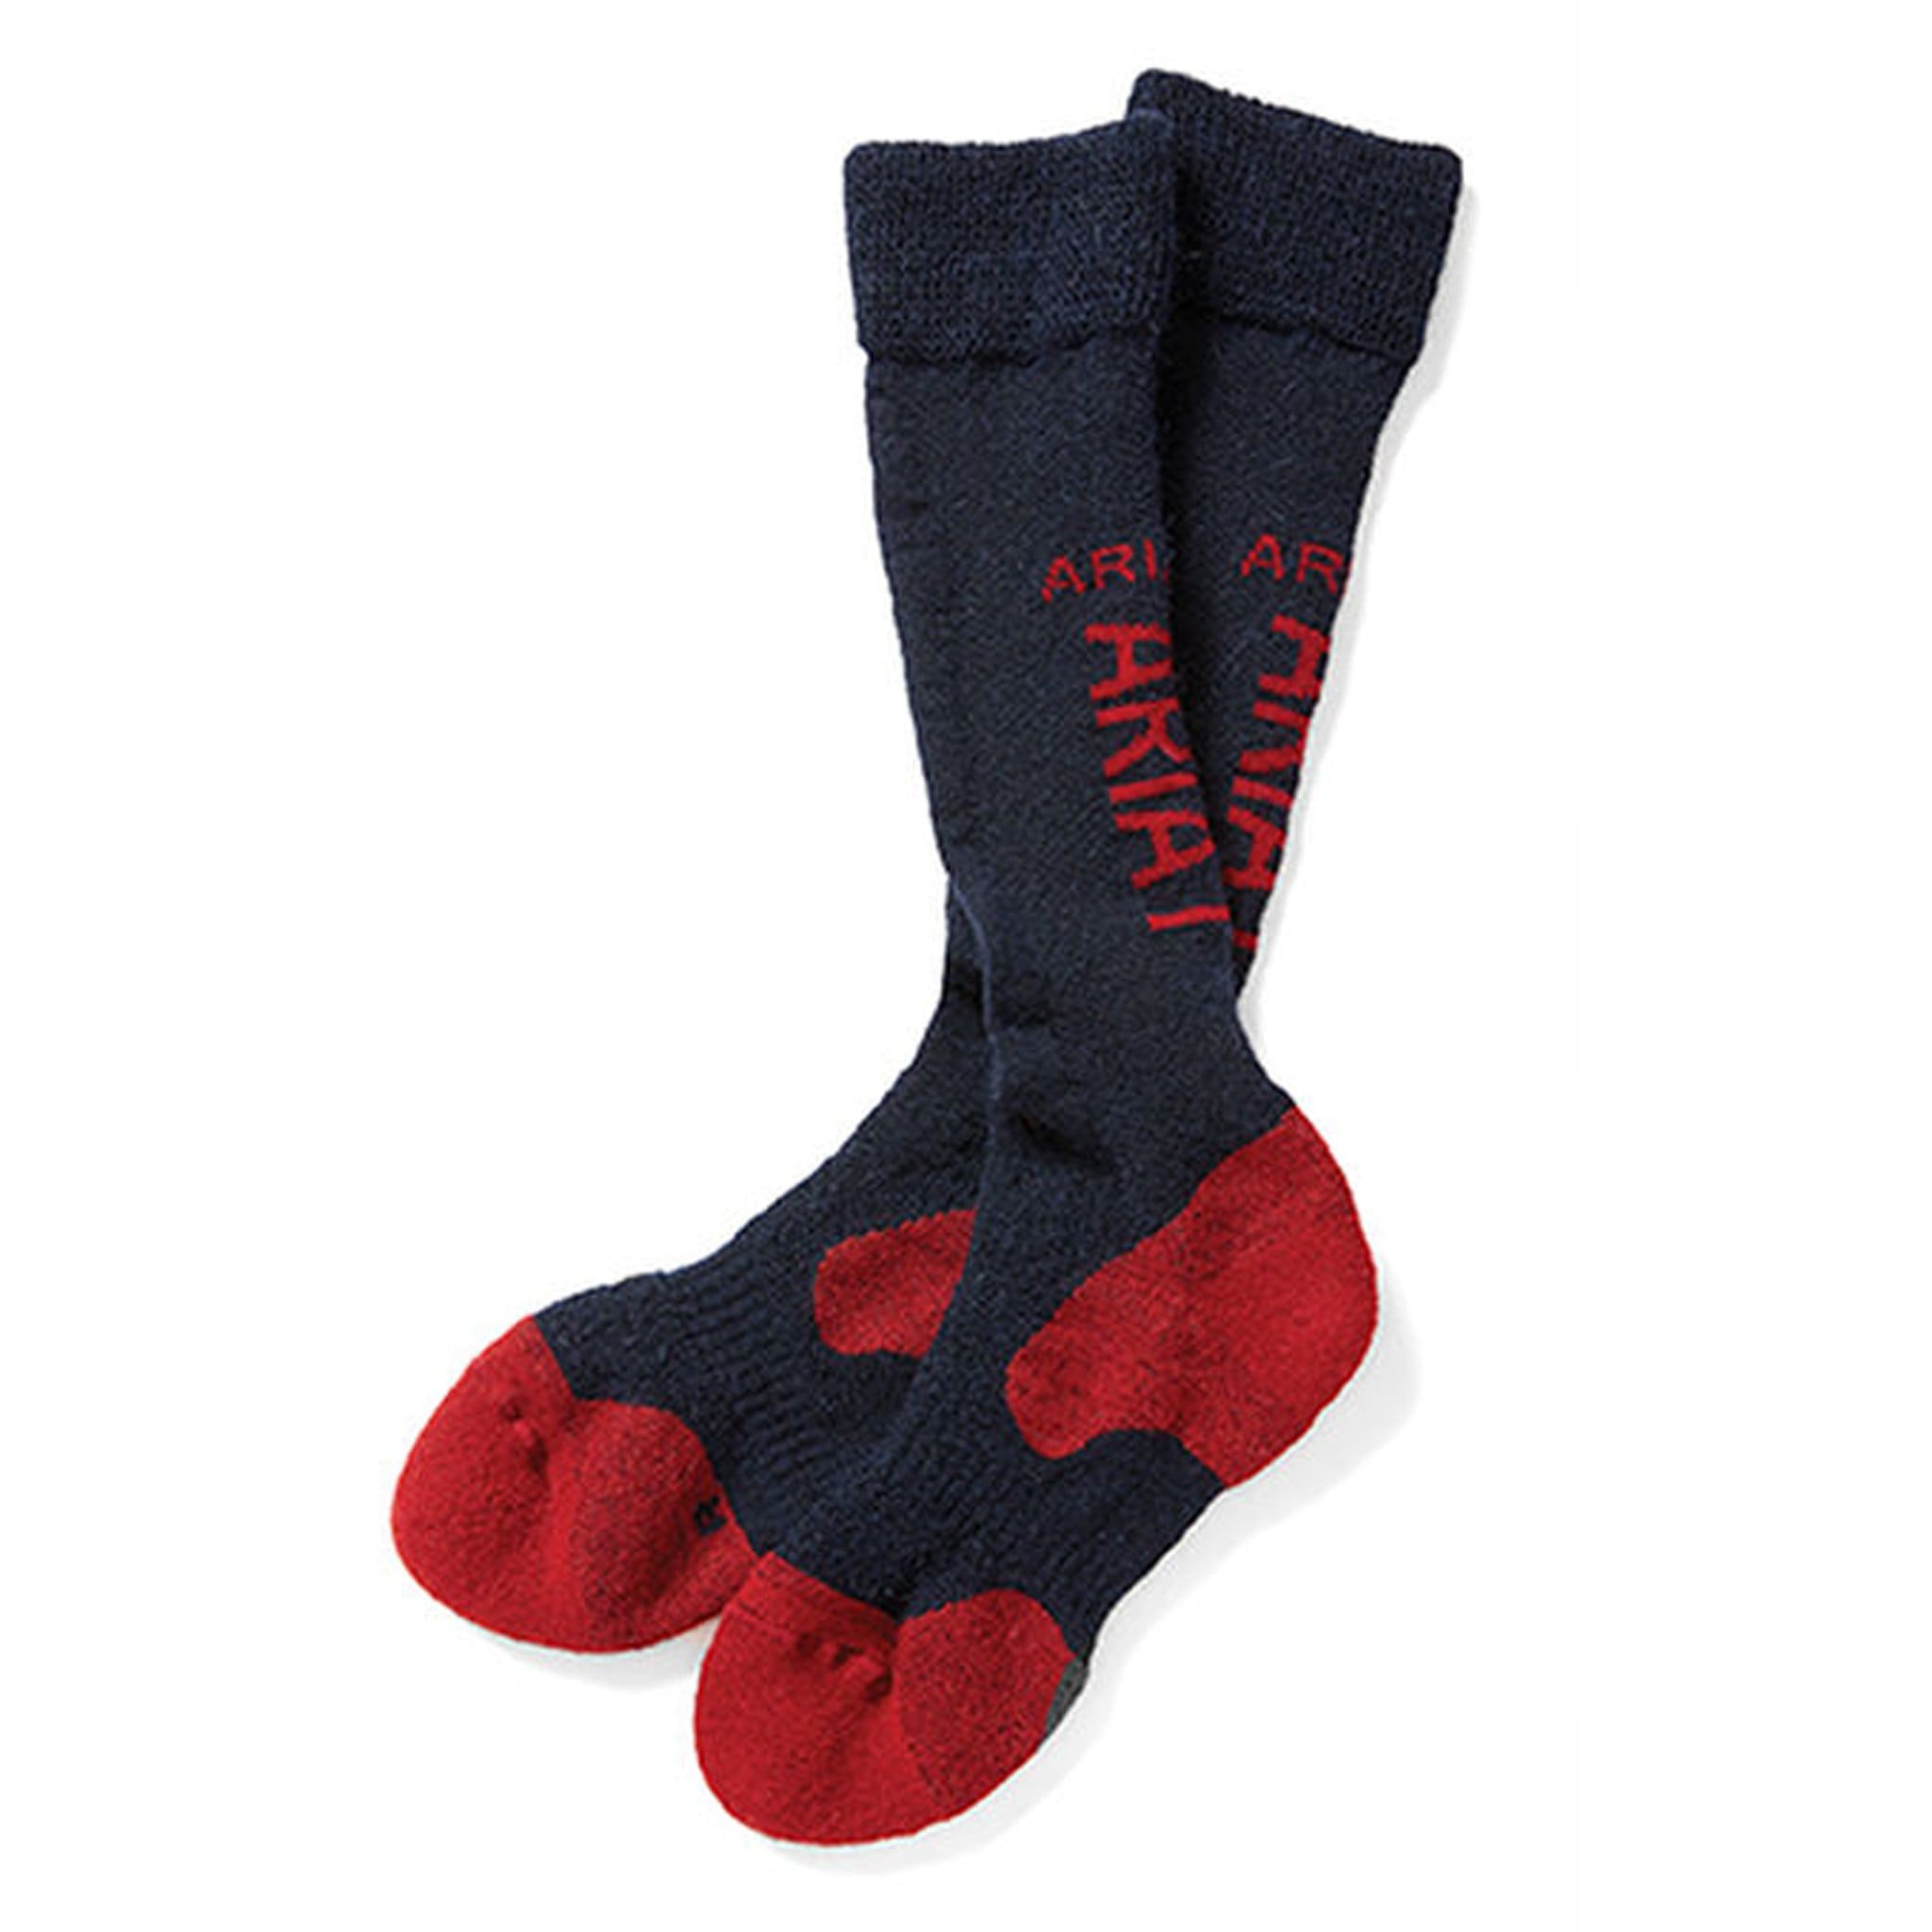 Ariat AriatTEK Alpaca Performance Riding Socks 10024325 Blue and Red